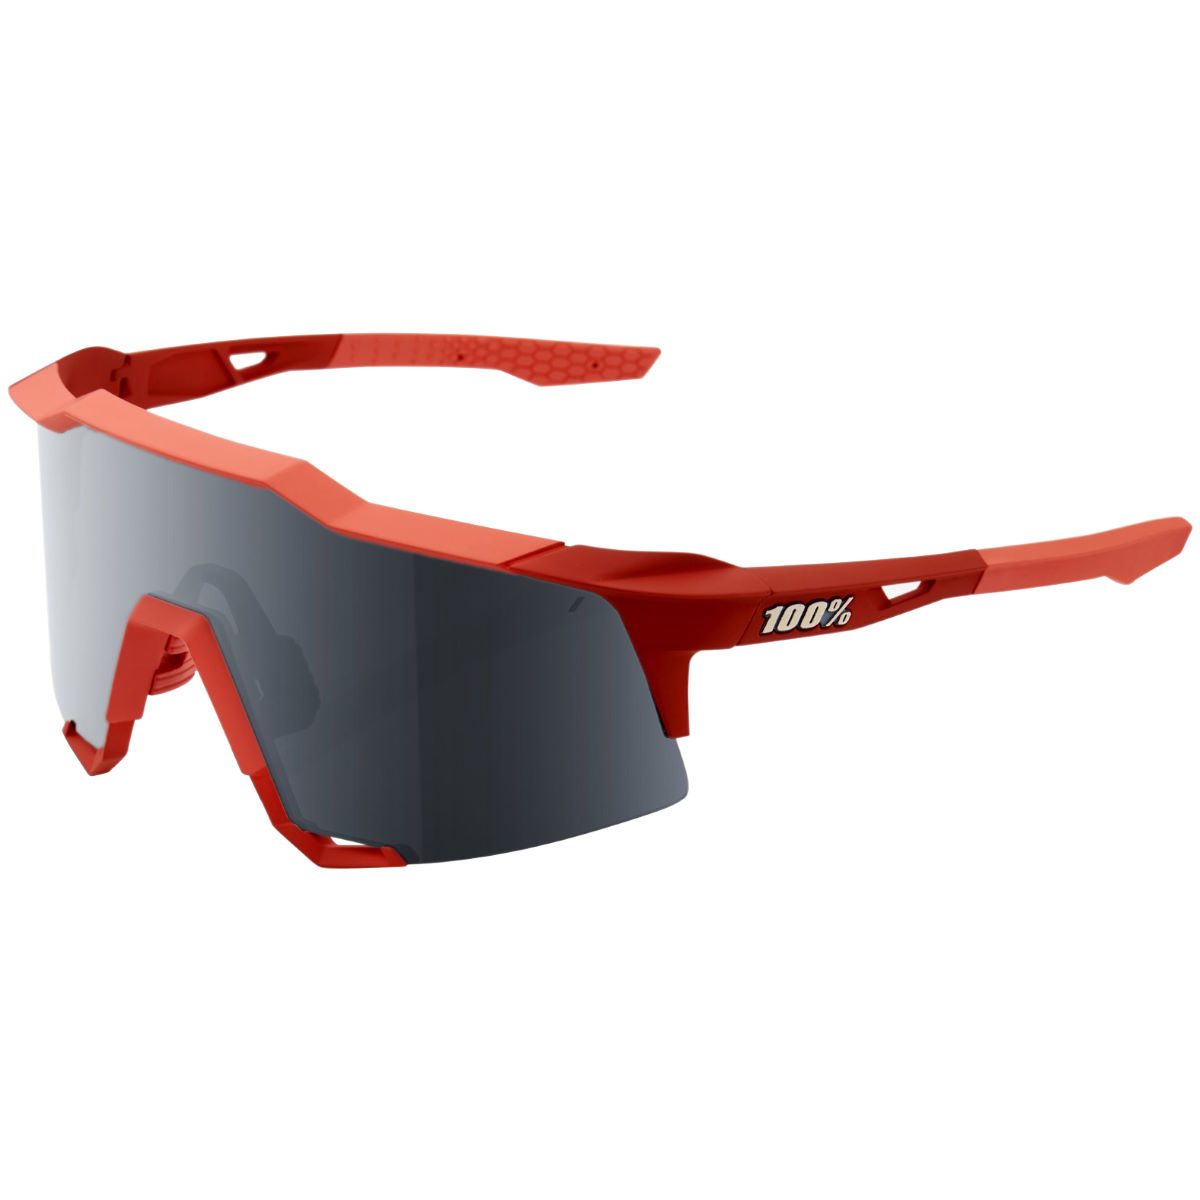 100% Speedcraft Soft Tact Coral Black Mirror Lens - One Size Red